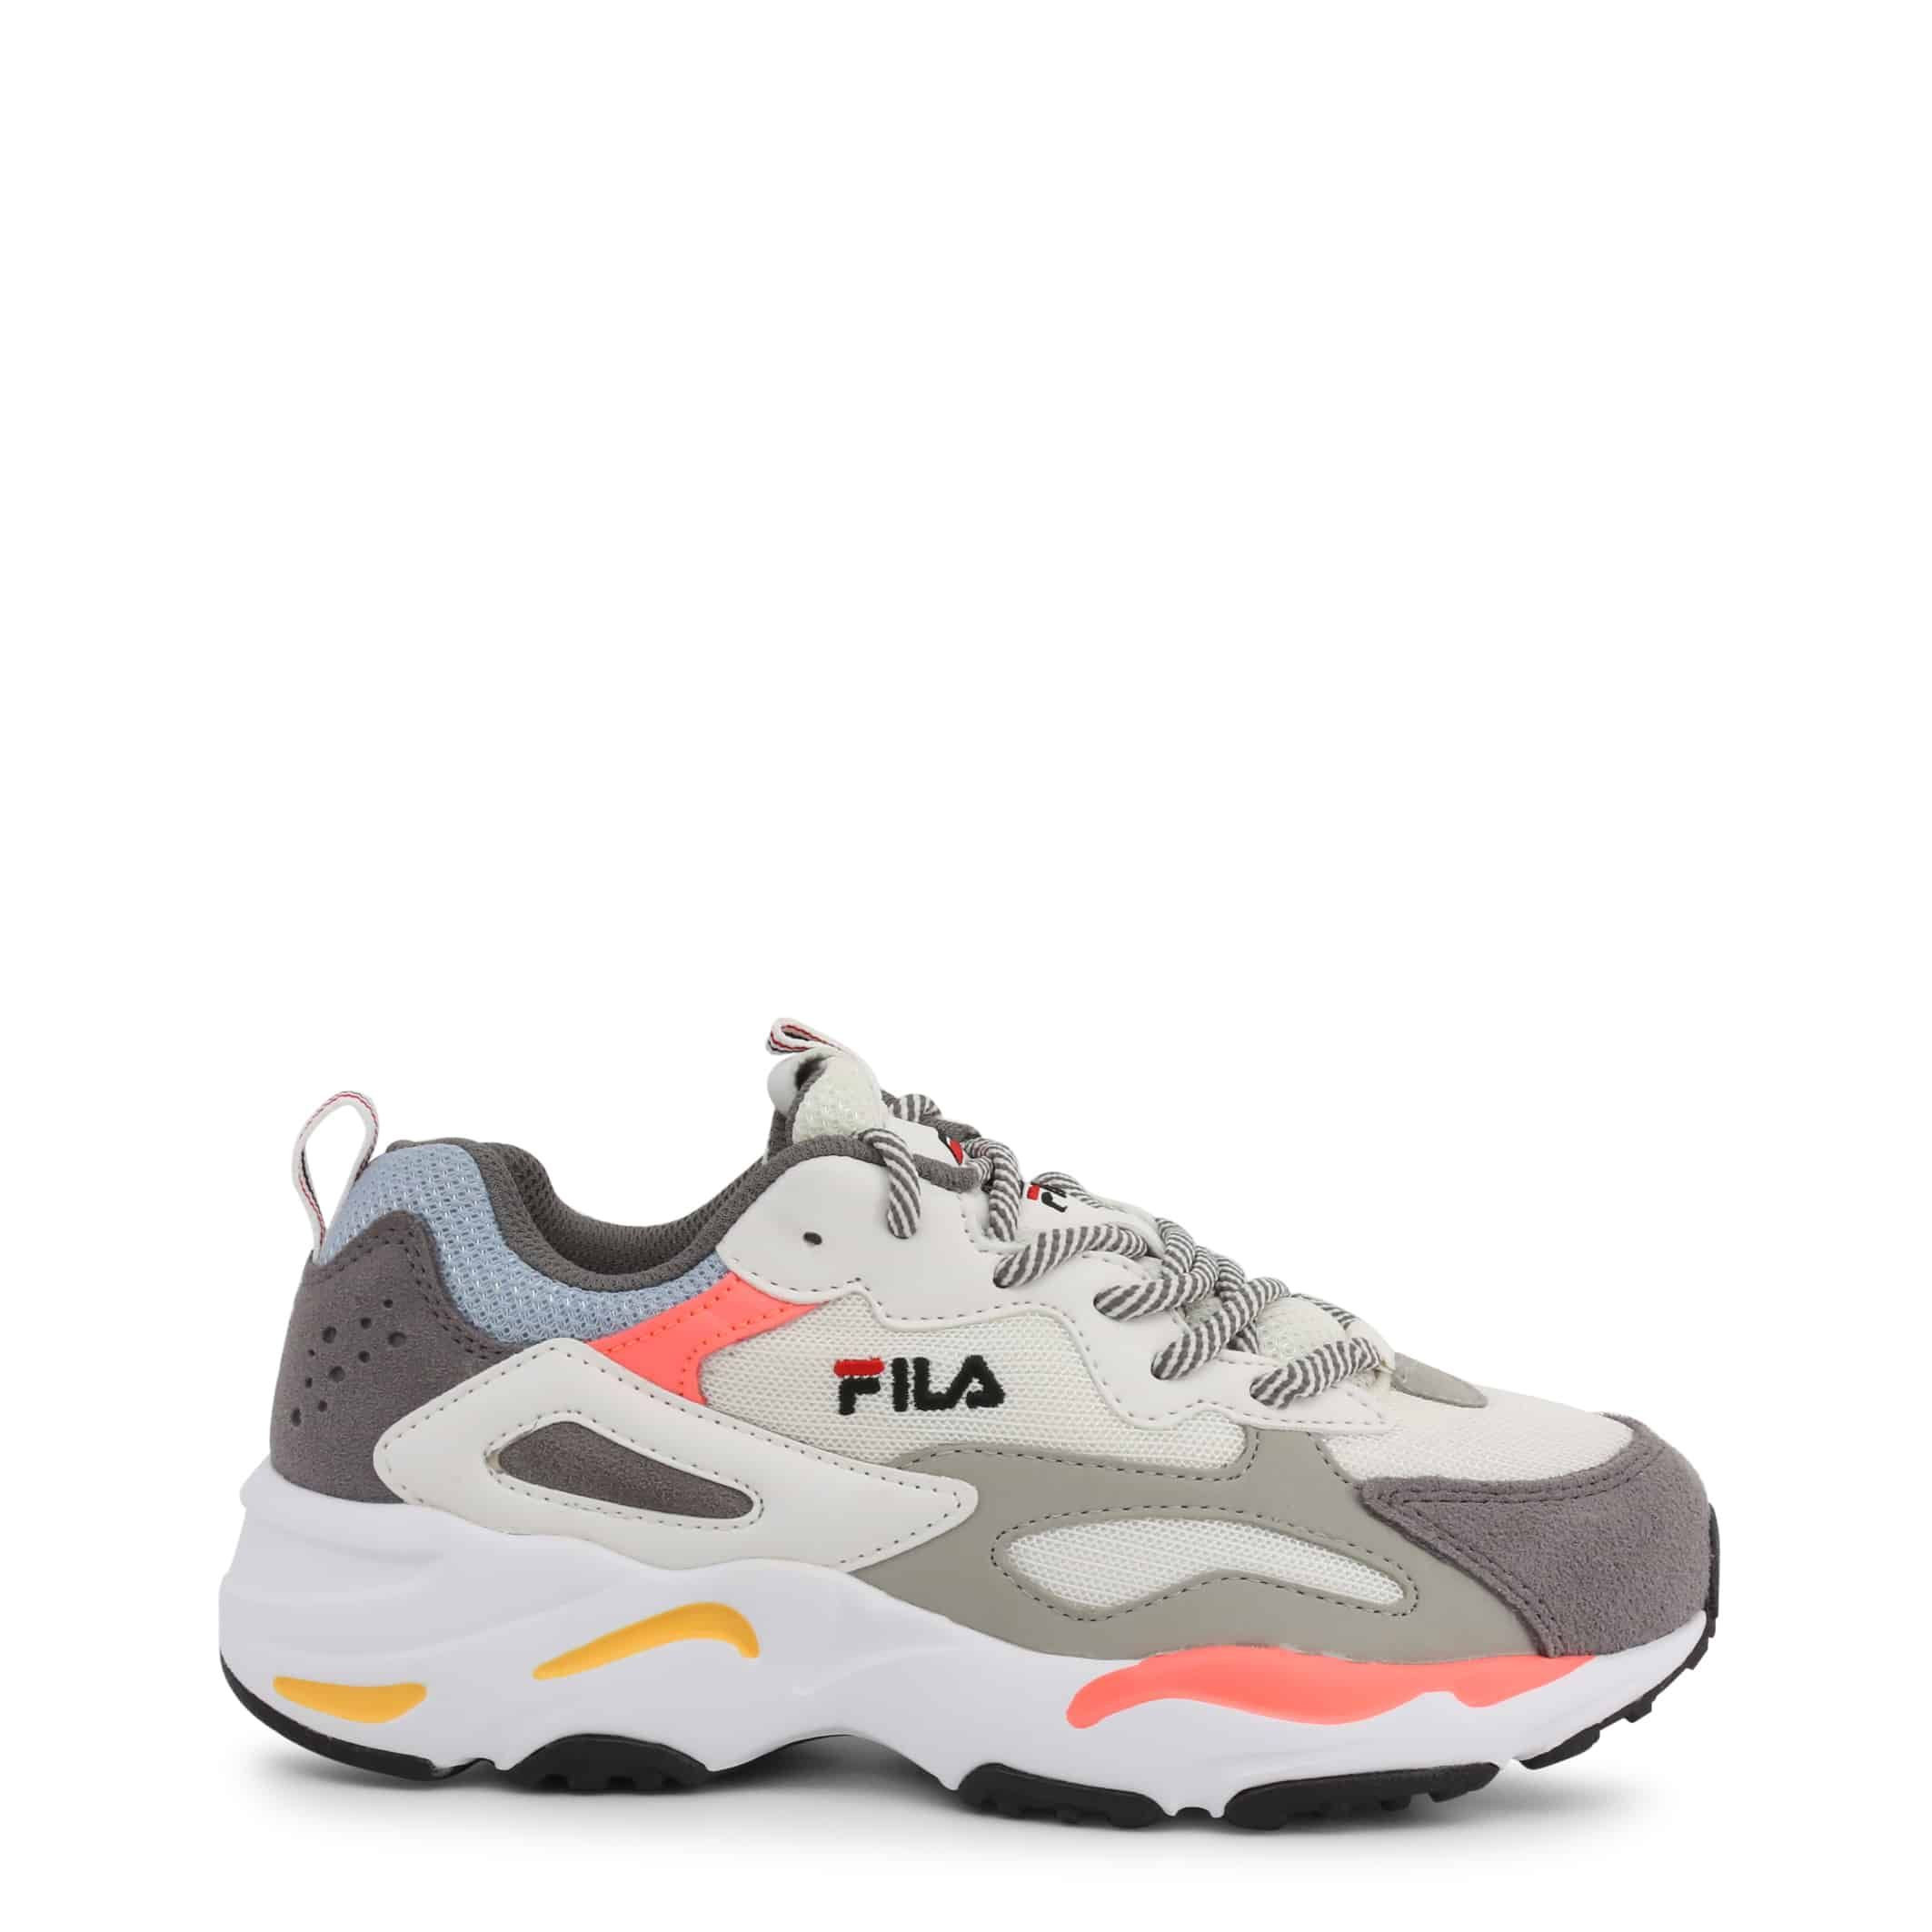 Fila - RAY-TRACER_1010686  | You Fashion Outlet